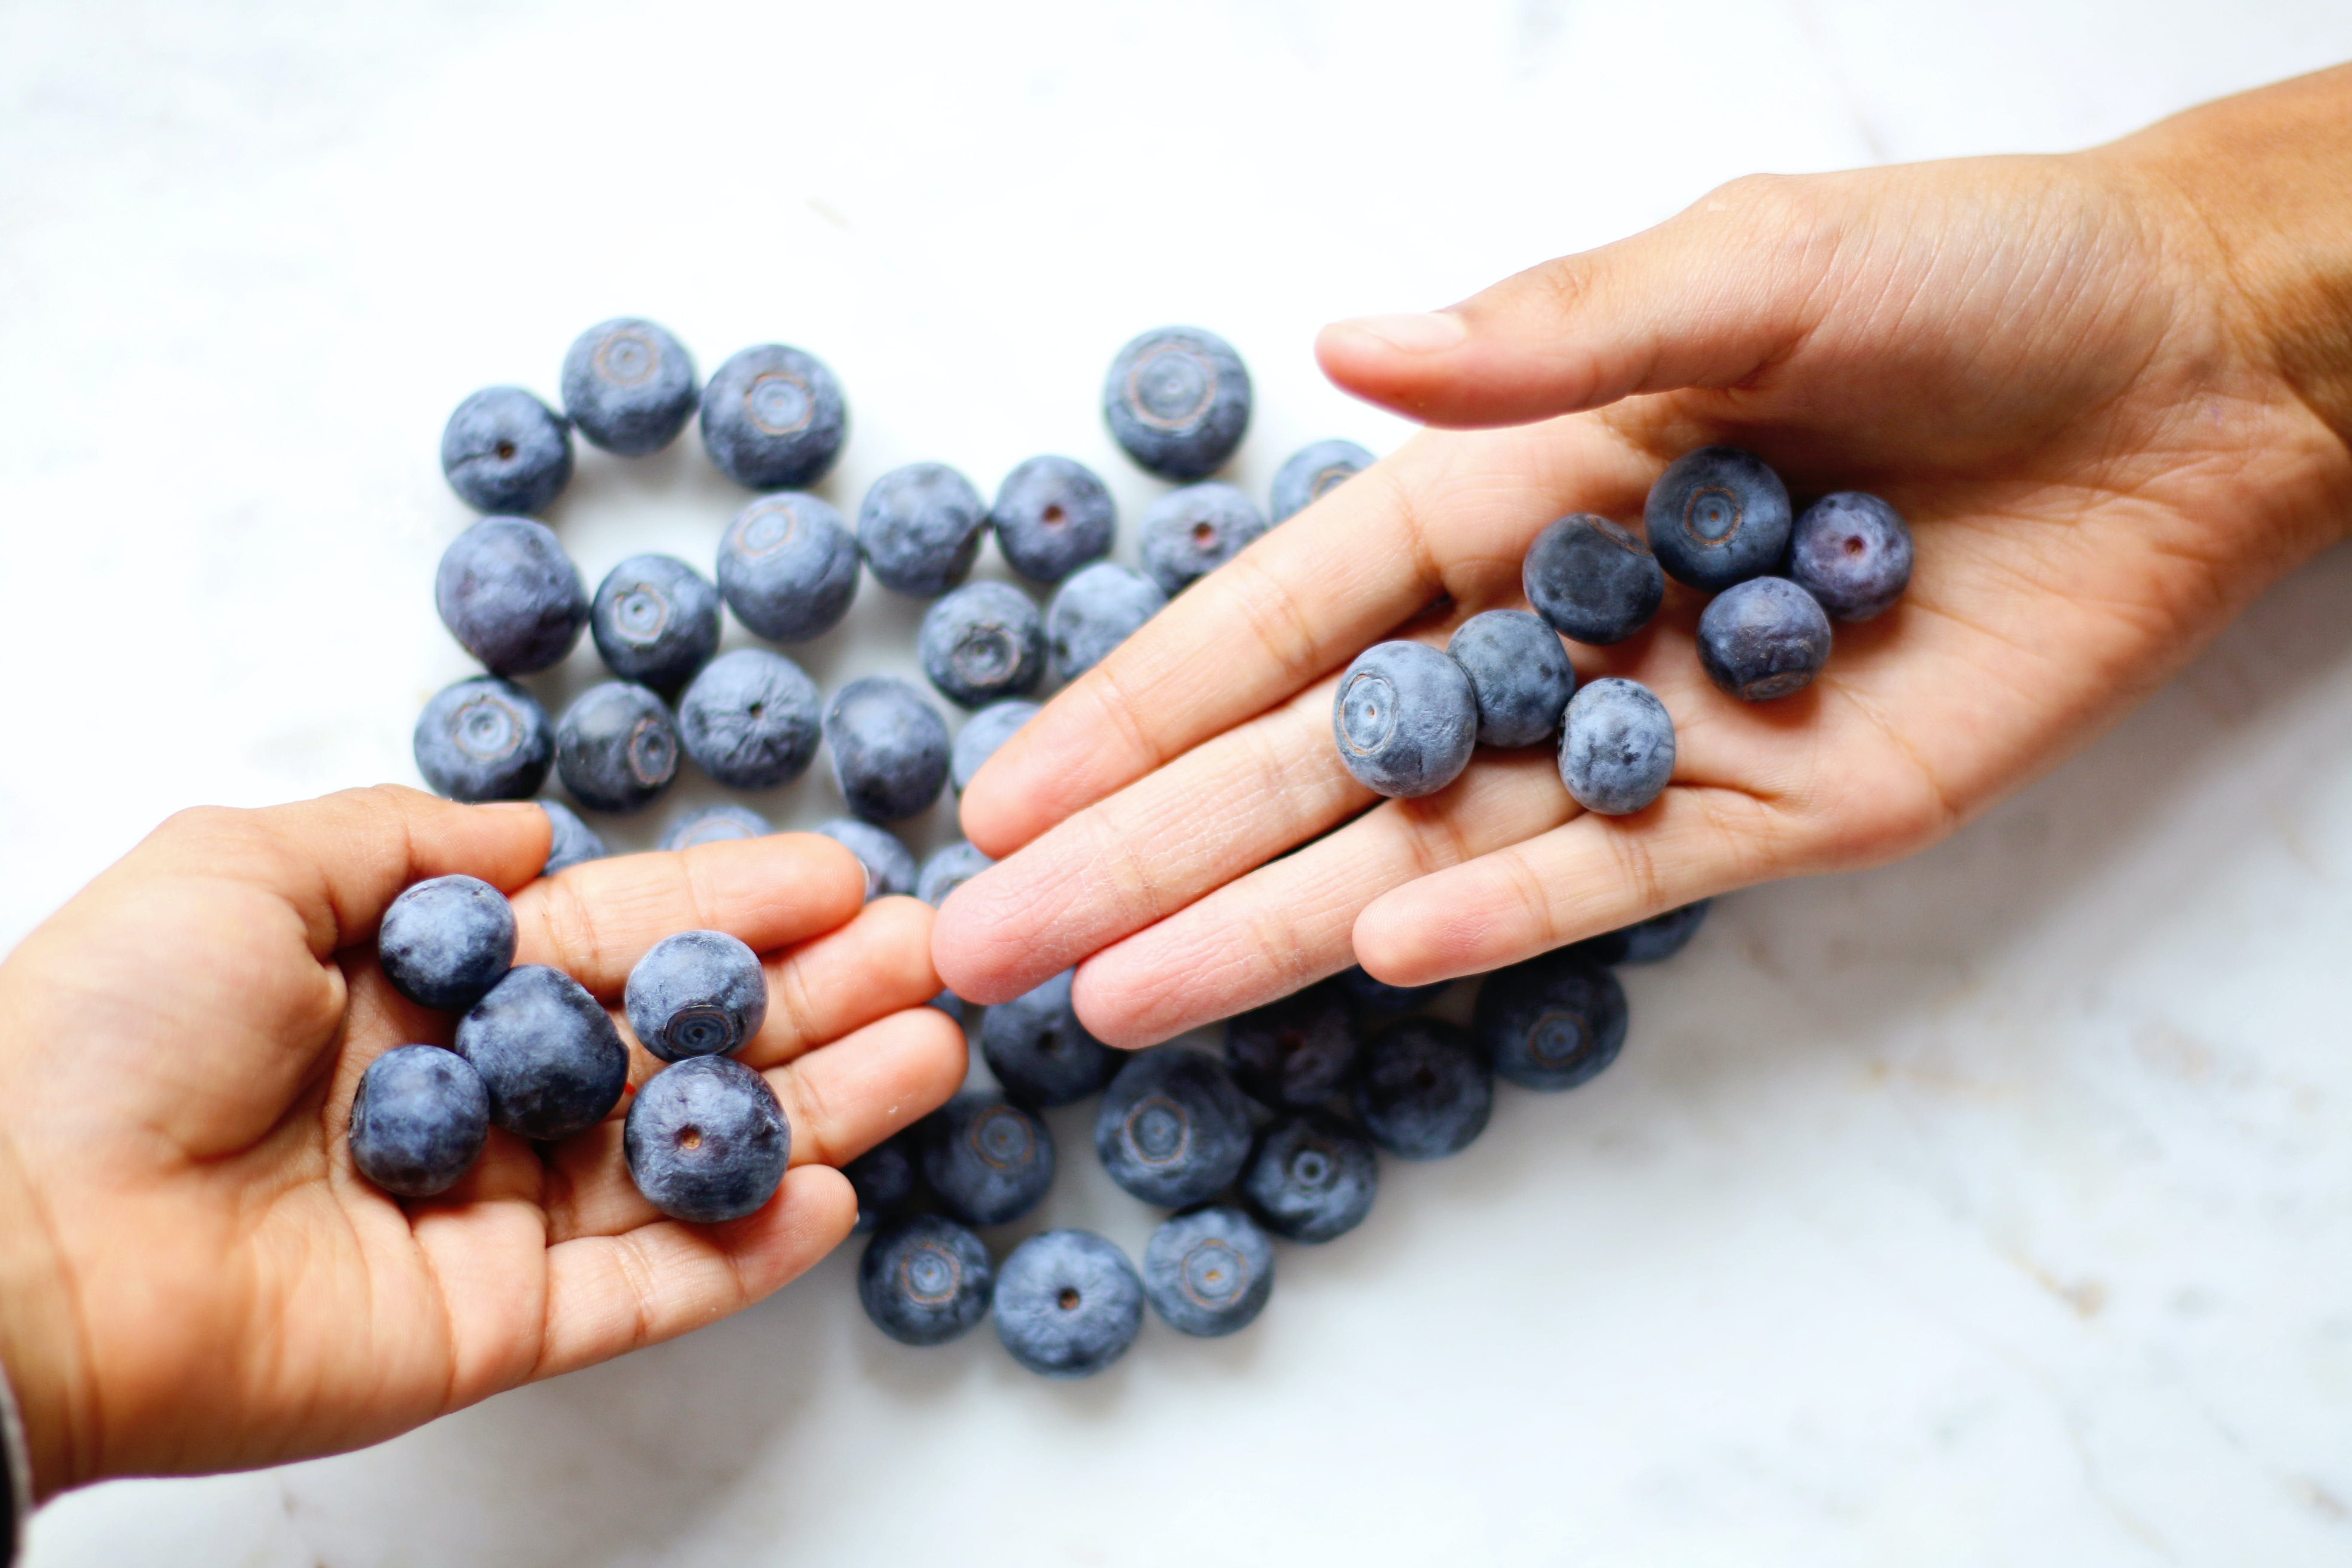 Two Person's Hand With Blueberries on Top